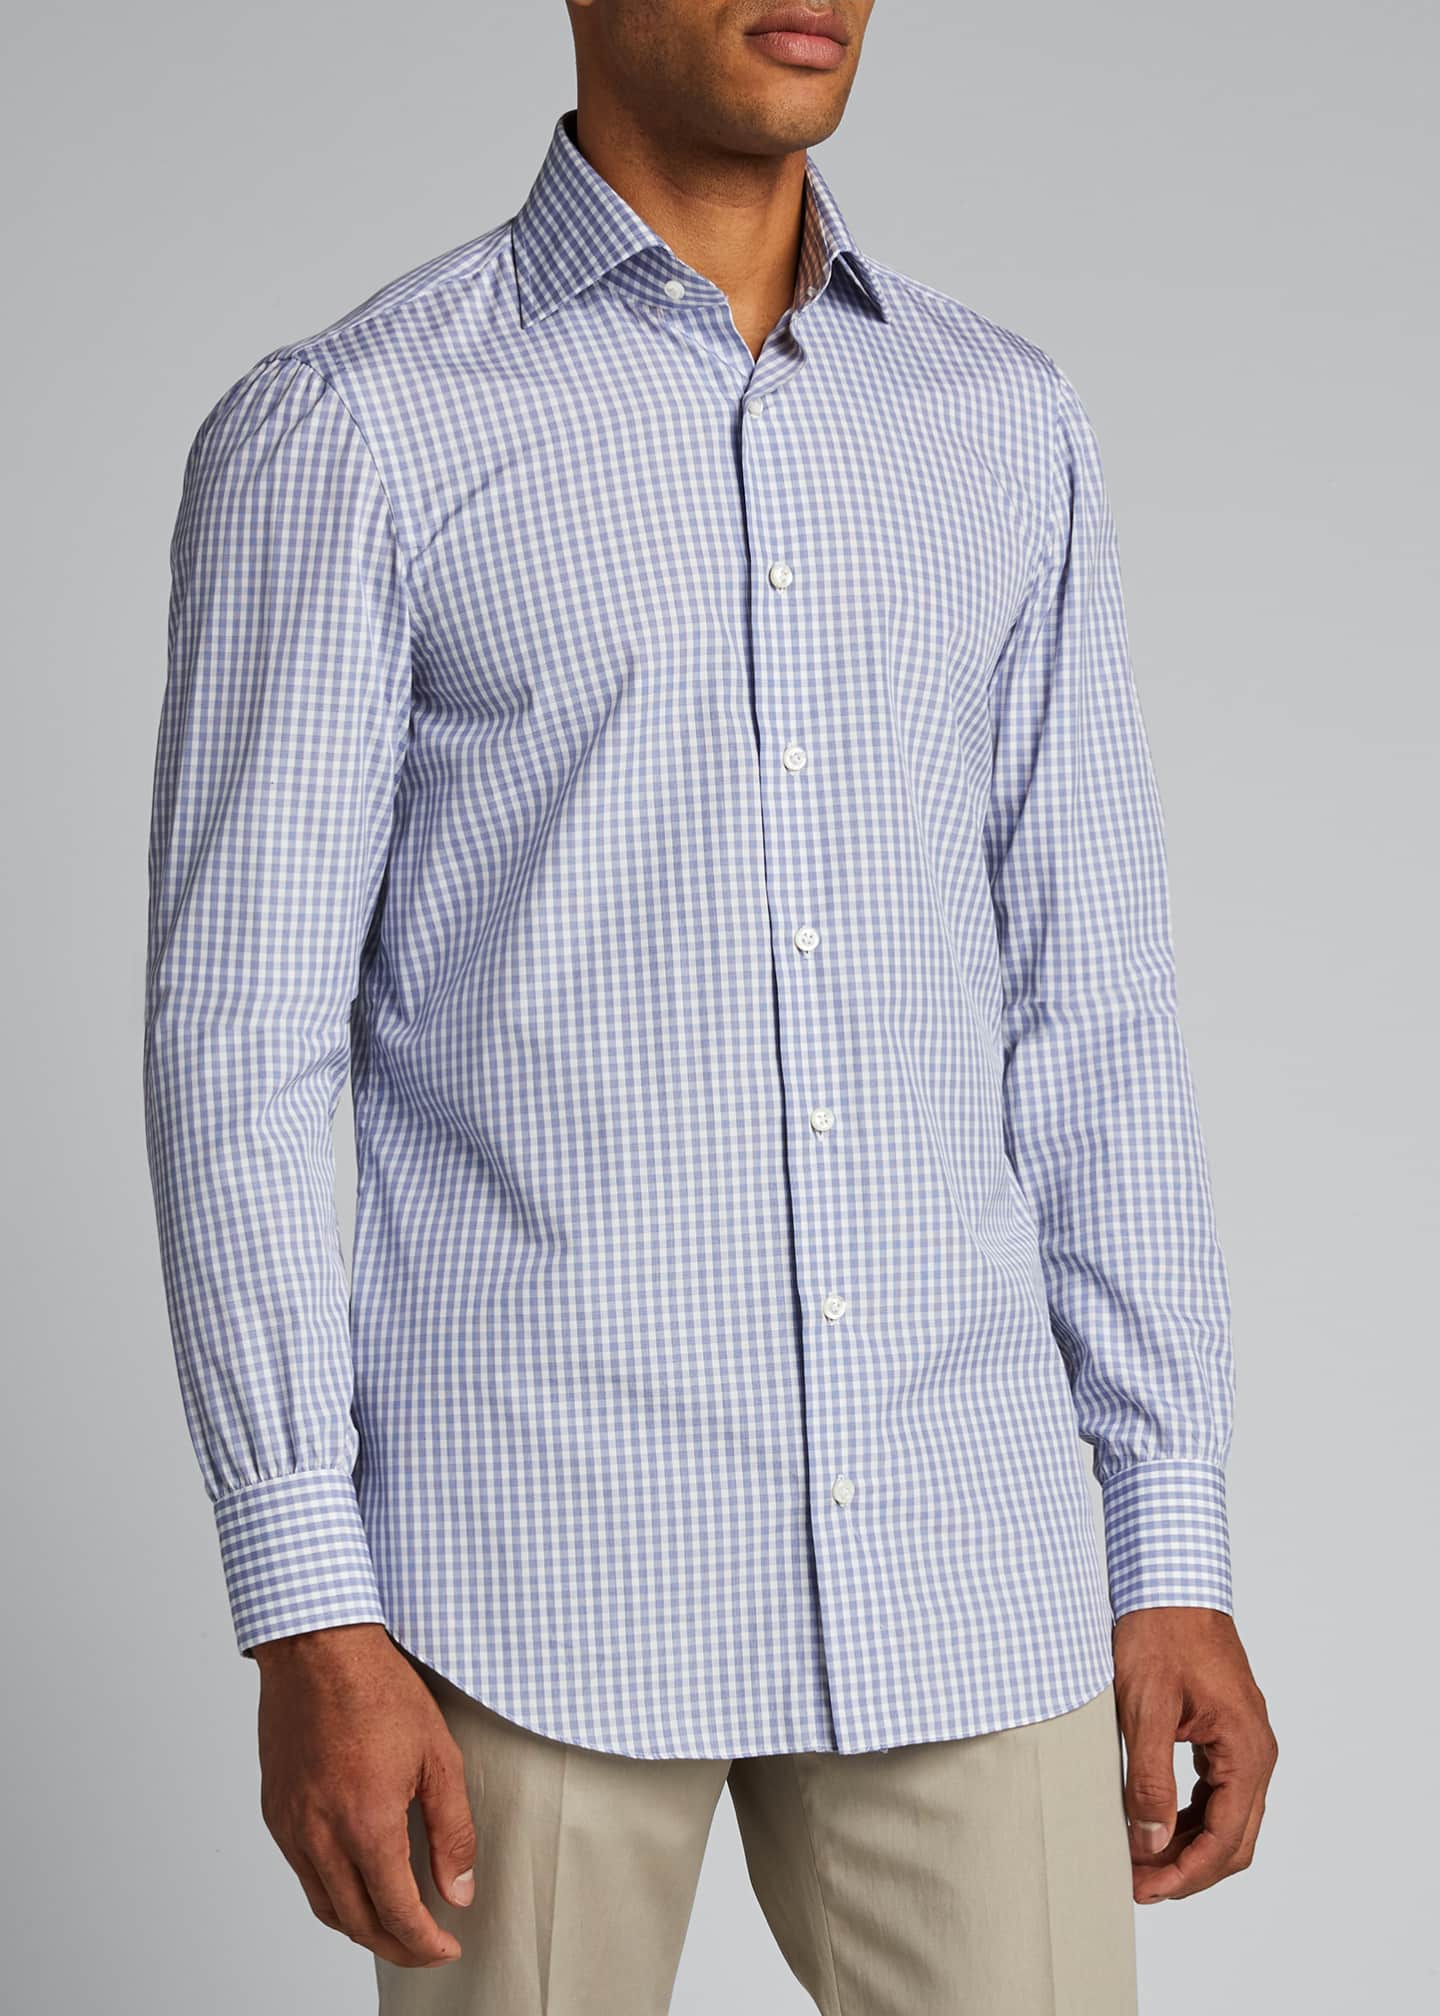 Image 3 of 5: Men's Check Cotton Sport Shirt